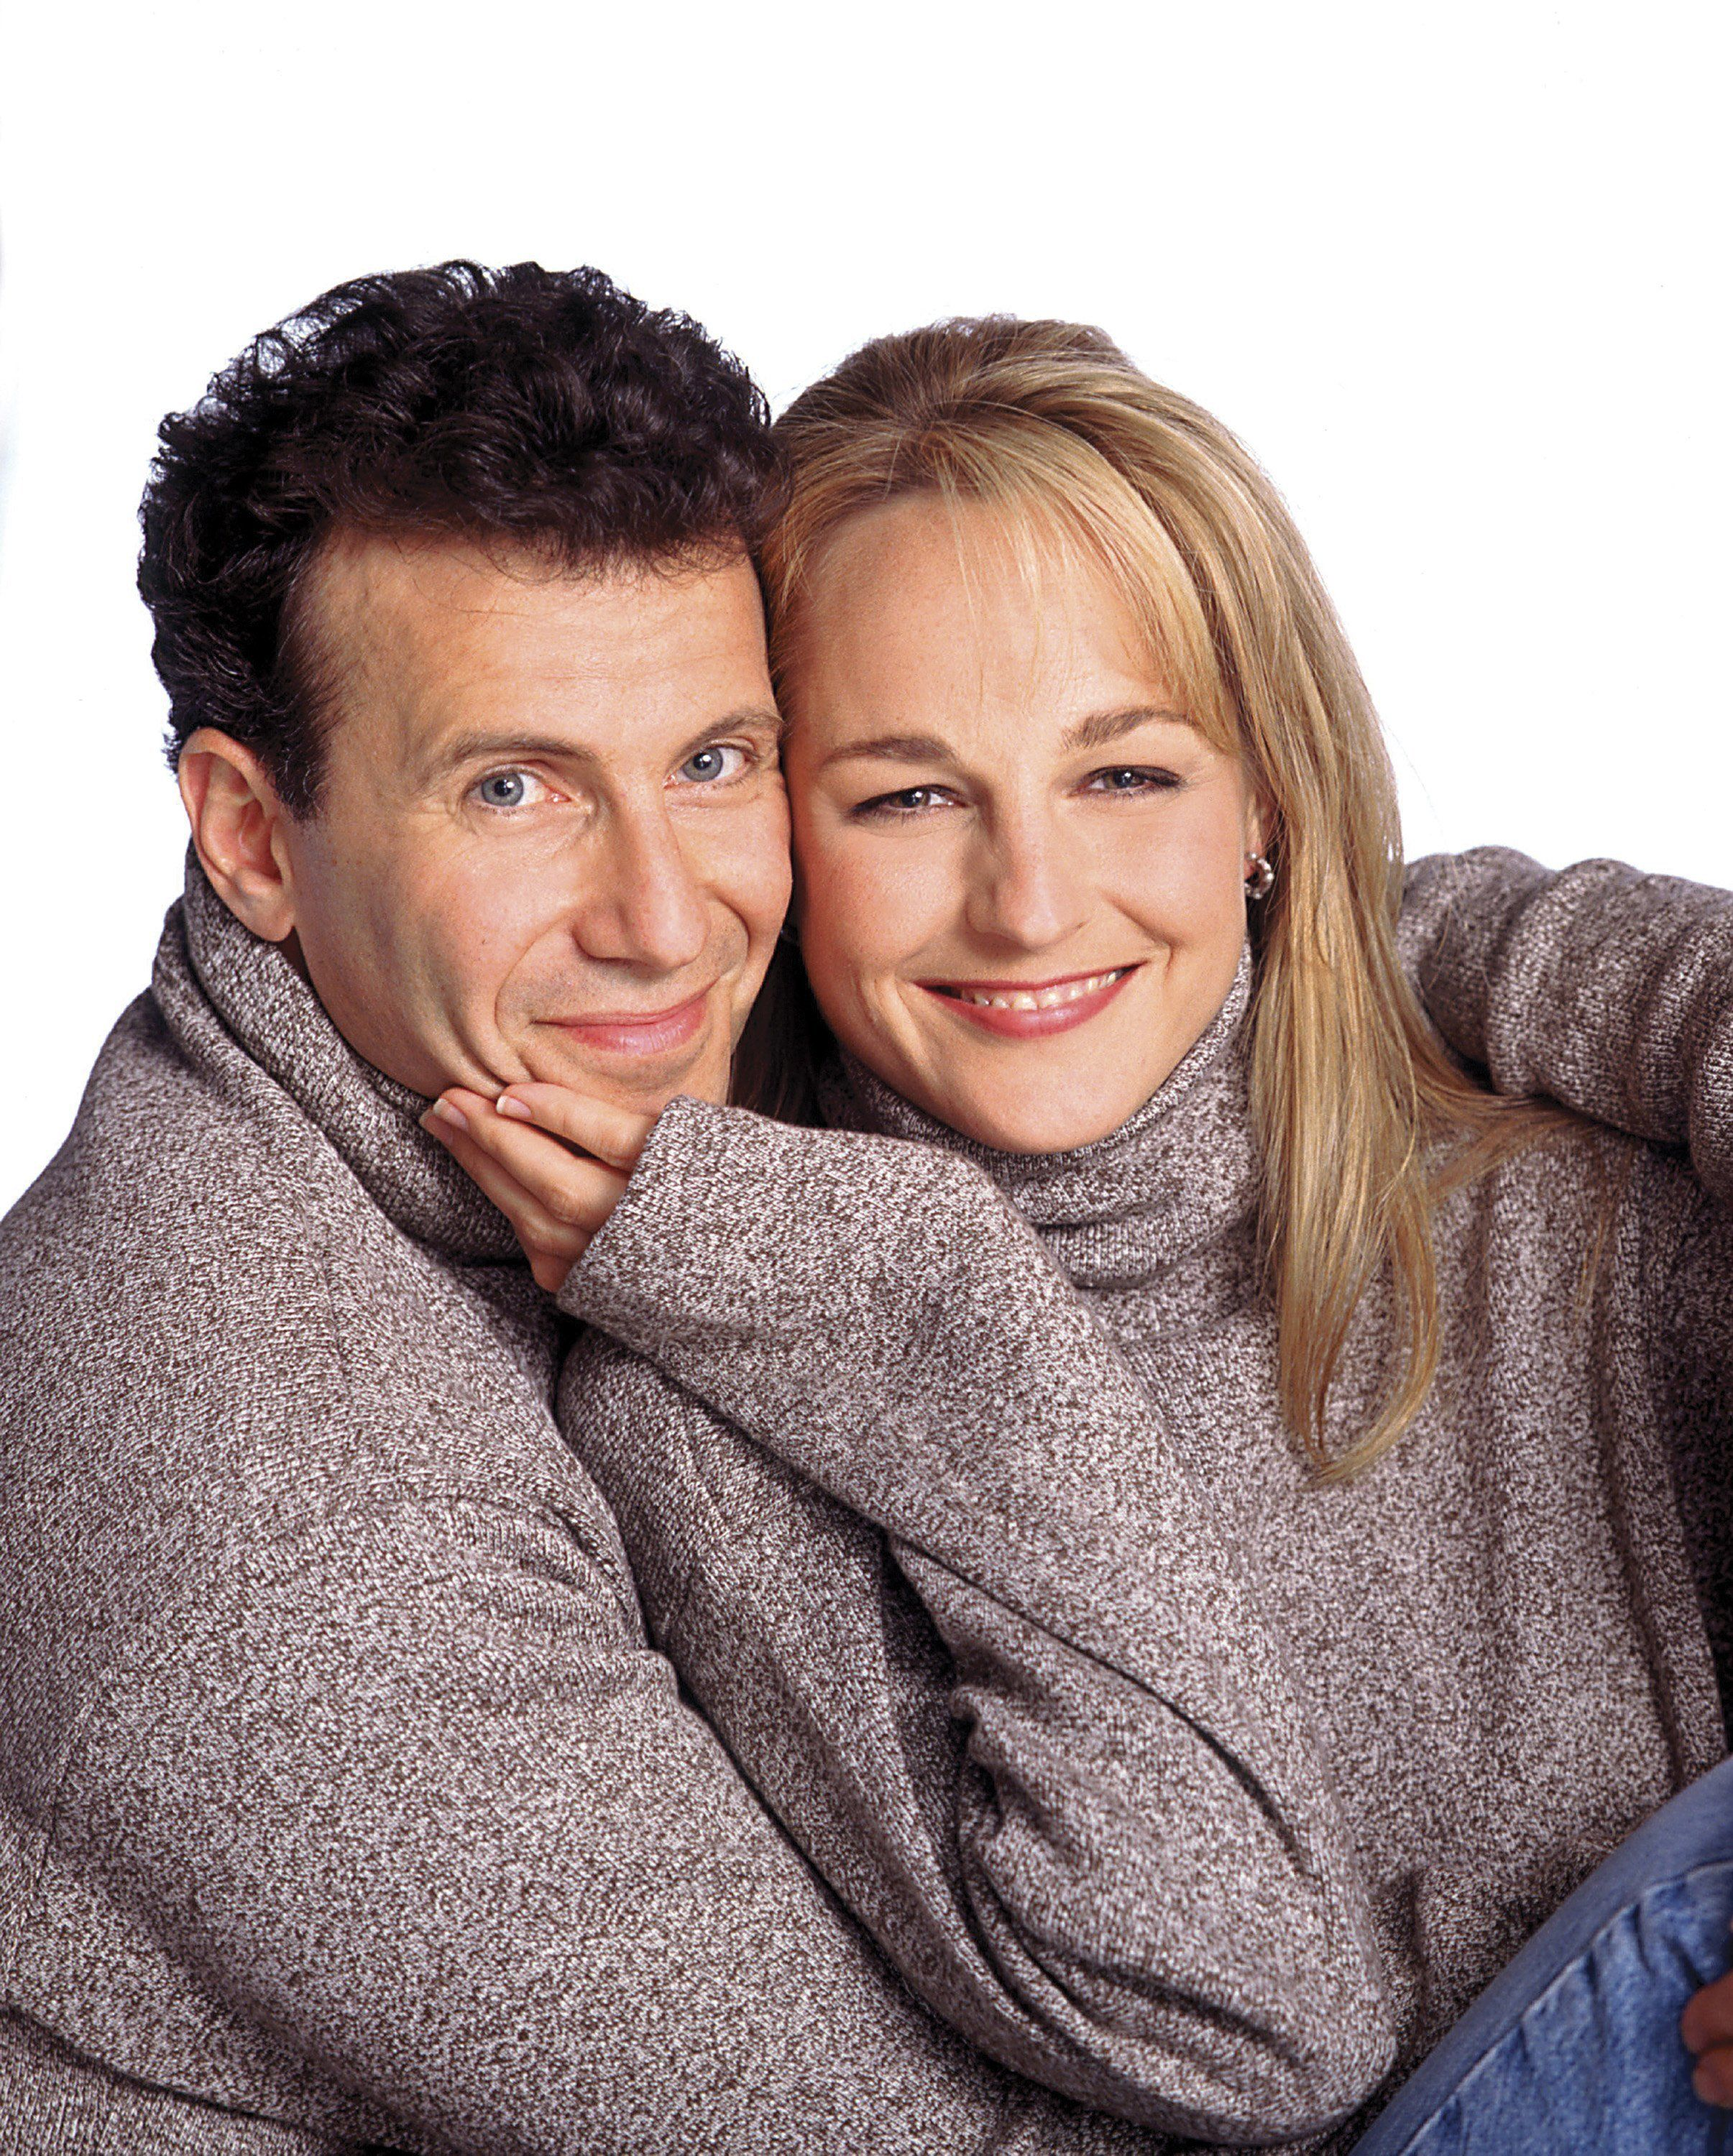 MAD ABOUT YOU -- Season 4 -- Pictured: (l-r) Paul Reiser as Paul Buchman, Helen Hunt as Jamie Stemple Buchman -- Photo by: Michael Tighe/NBC/NBCU Photo Bank